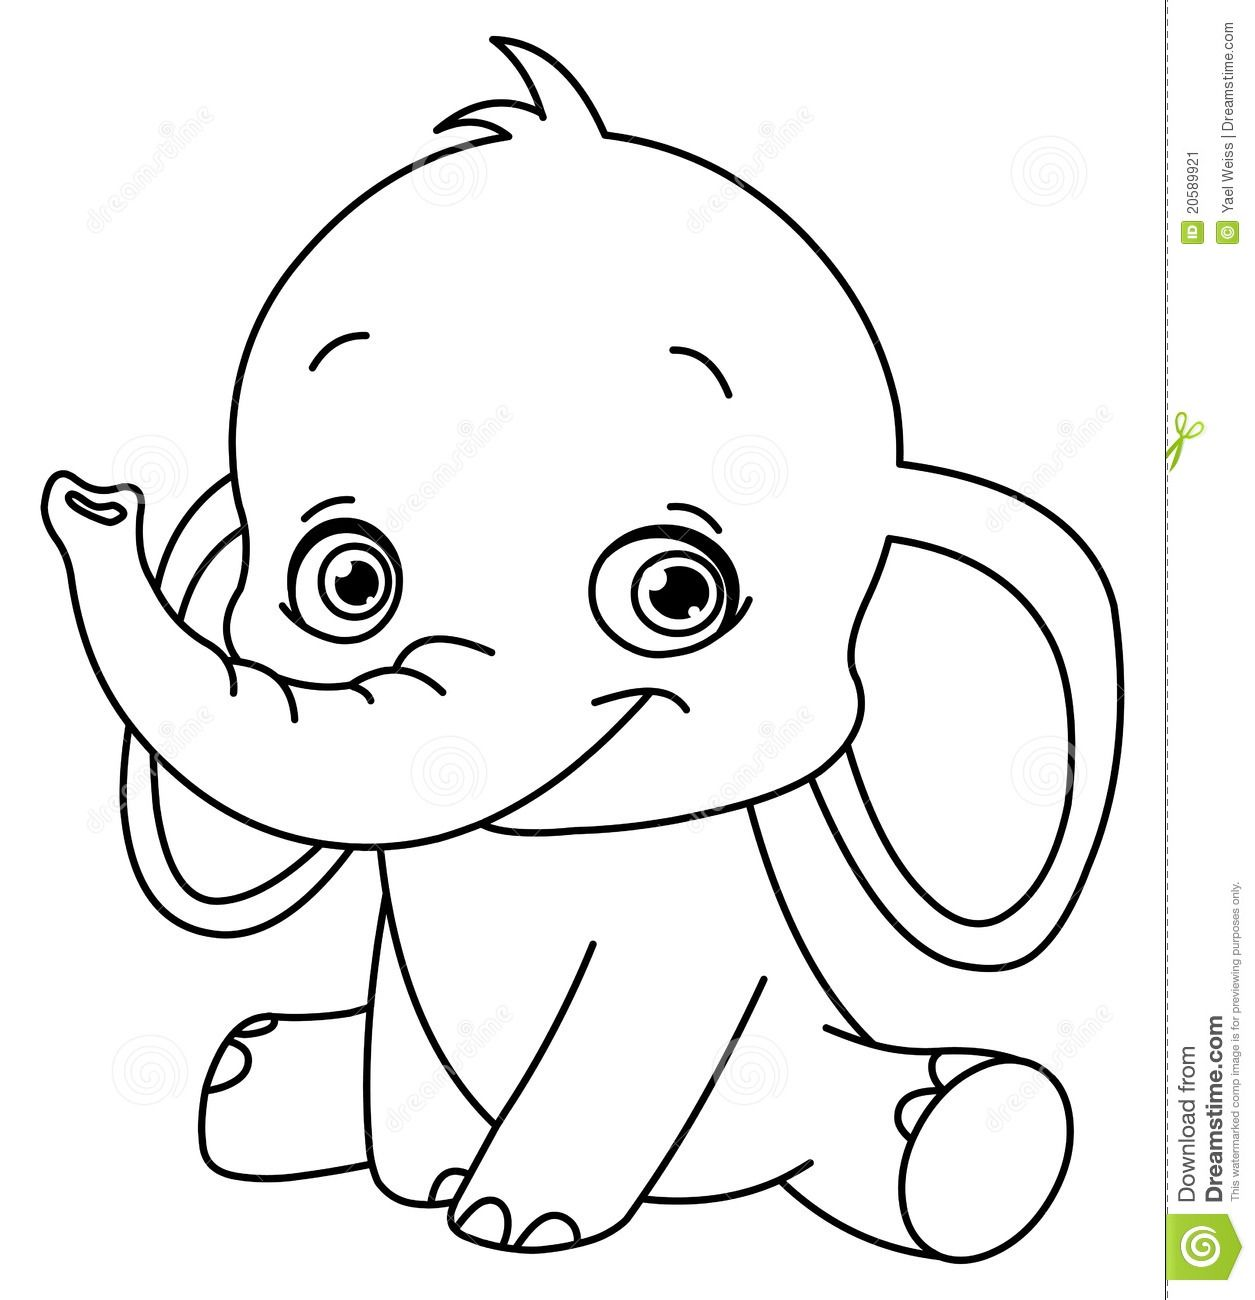 image about Elephant Coloring Pages Printable named Youngster elephant coloring internet pages toward down load and print for no cost